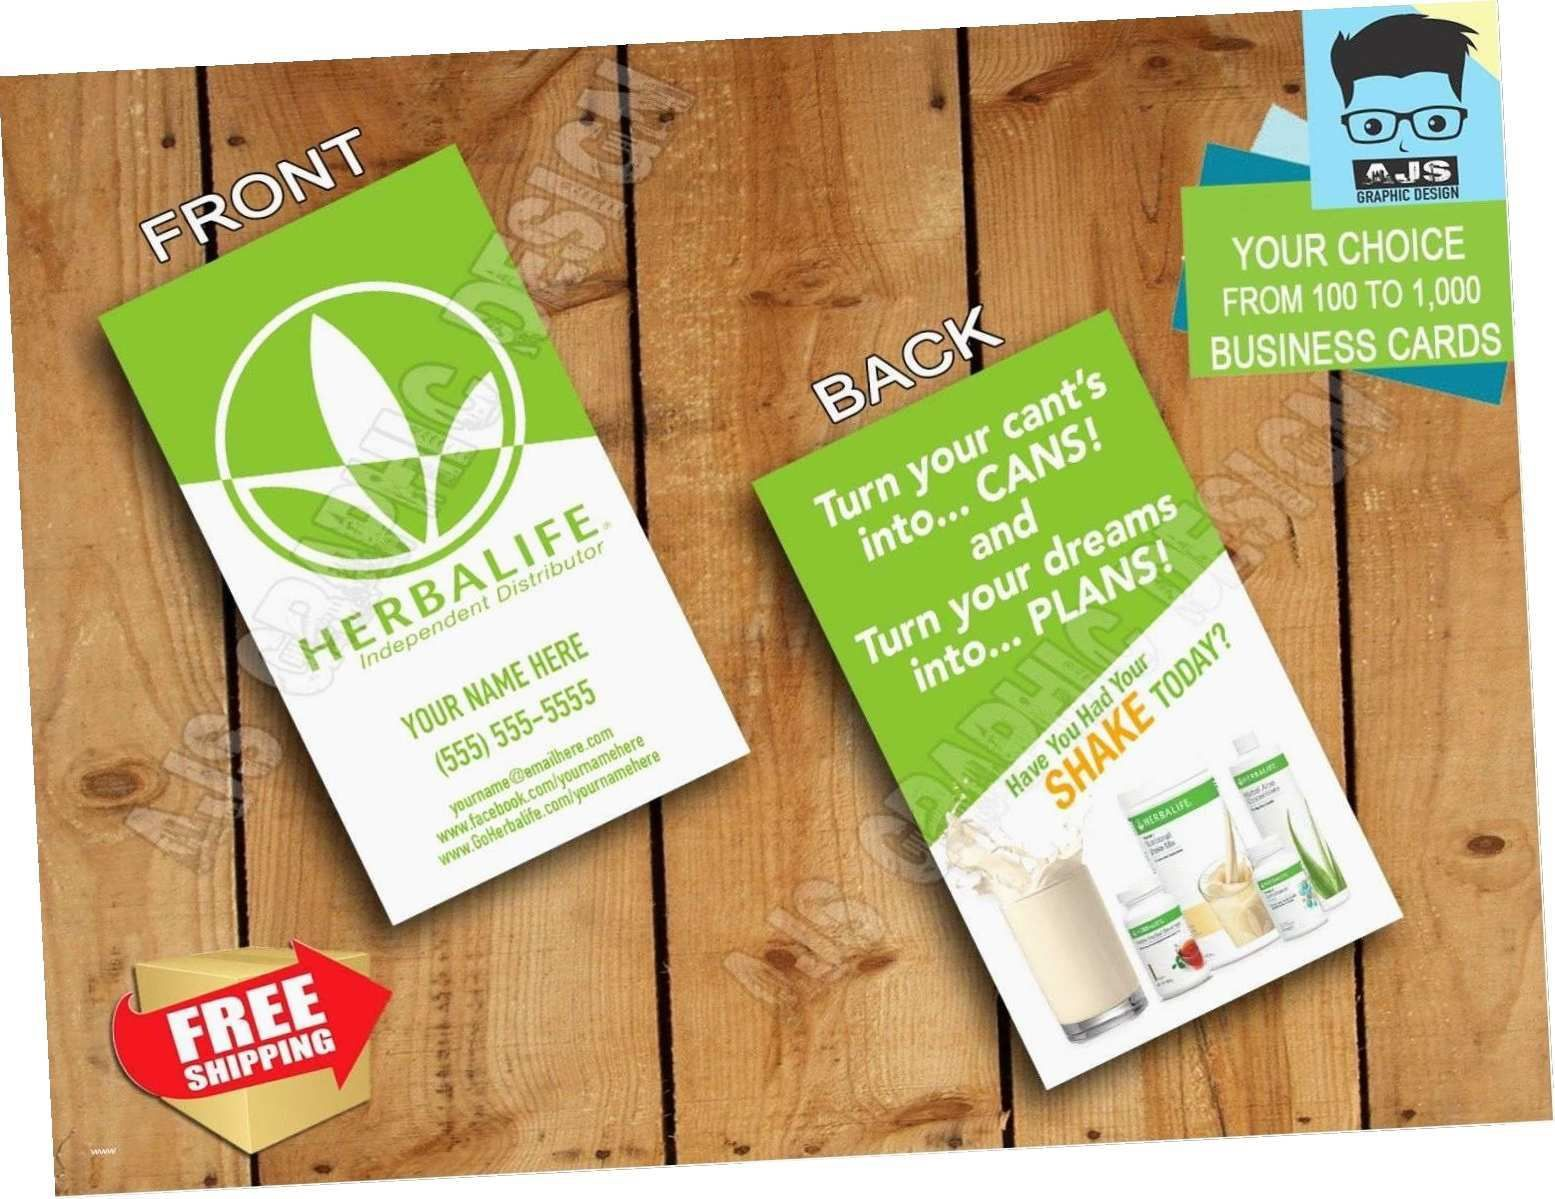 004 Magnificent Herbalife Busines Card Template Example  Download FreeFull